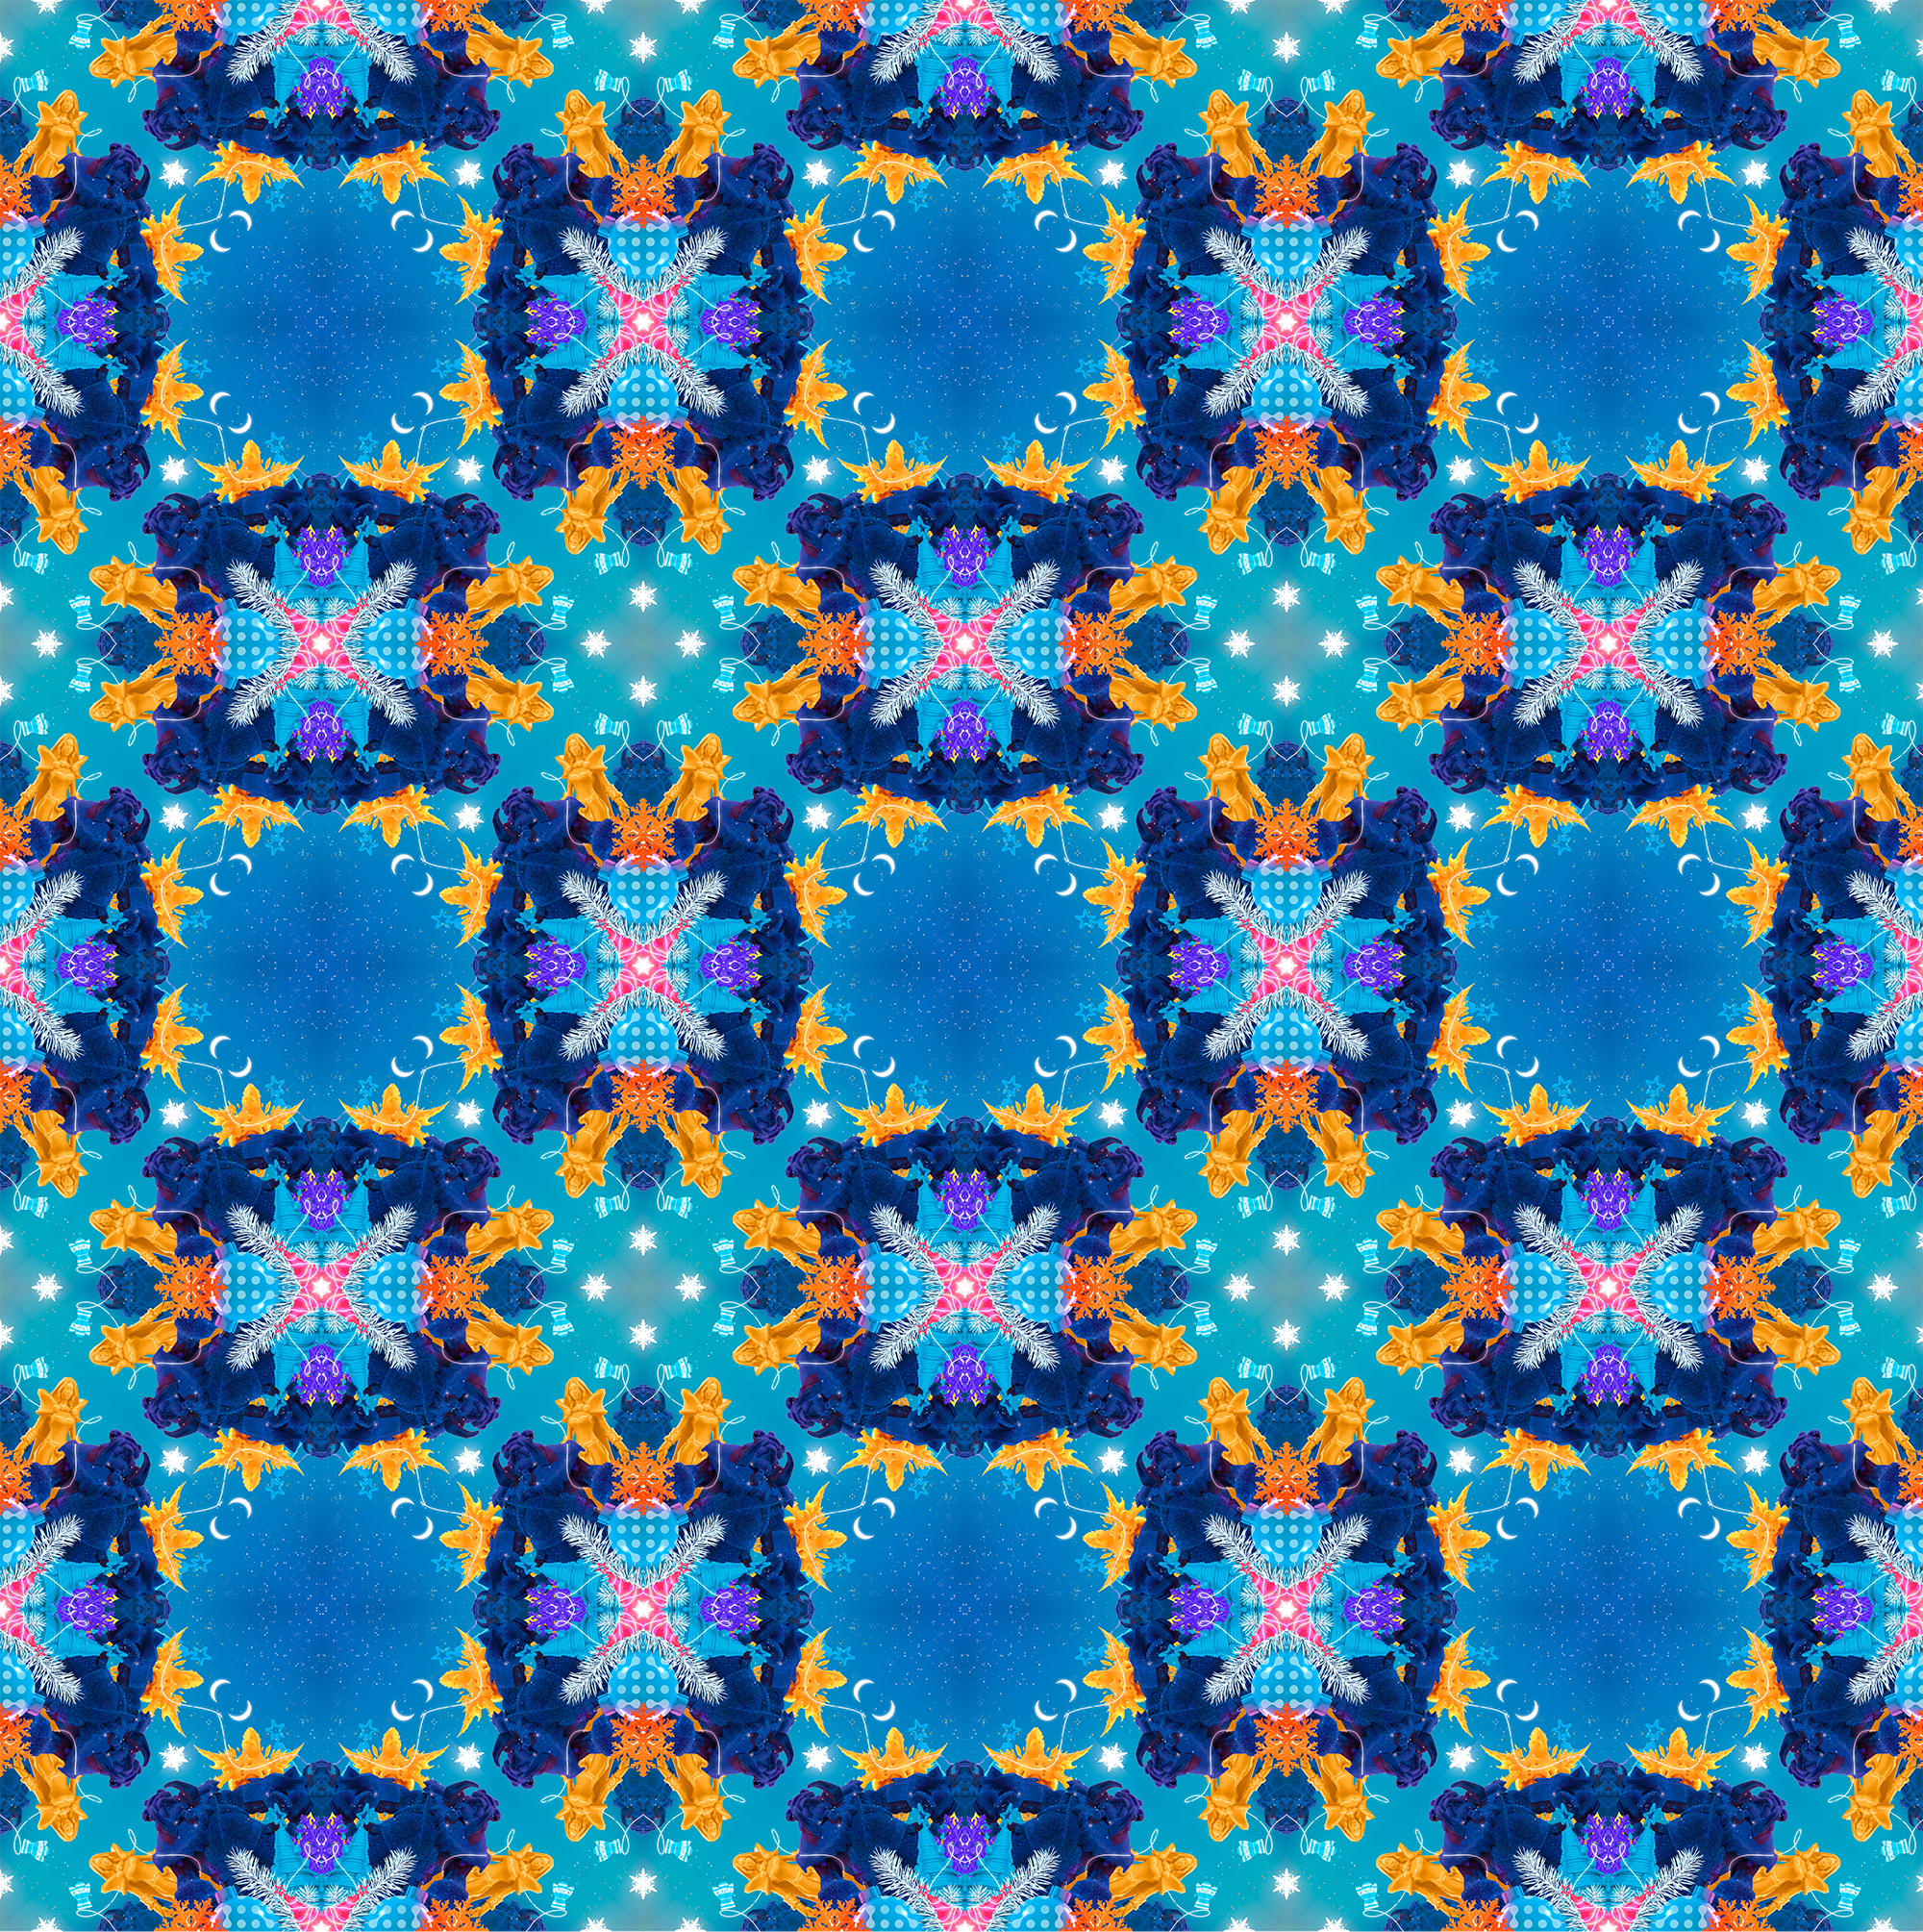 one of the main patterns